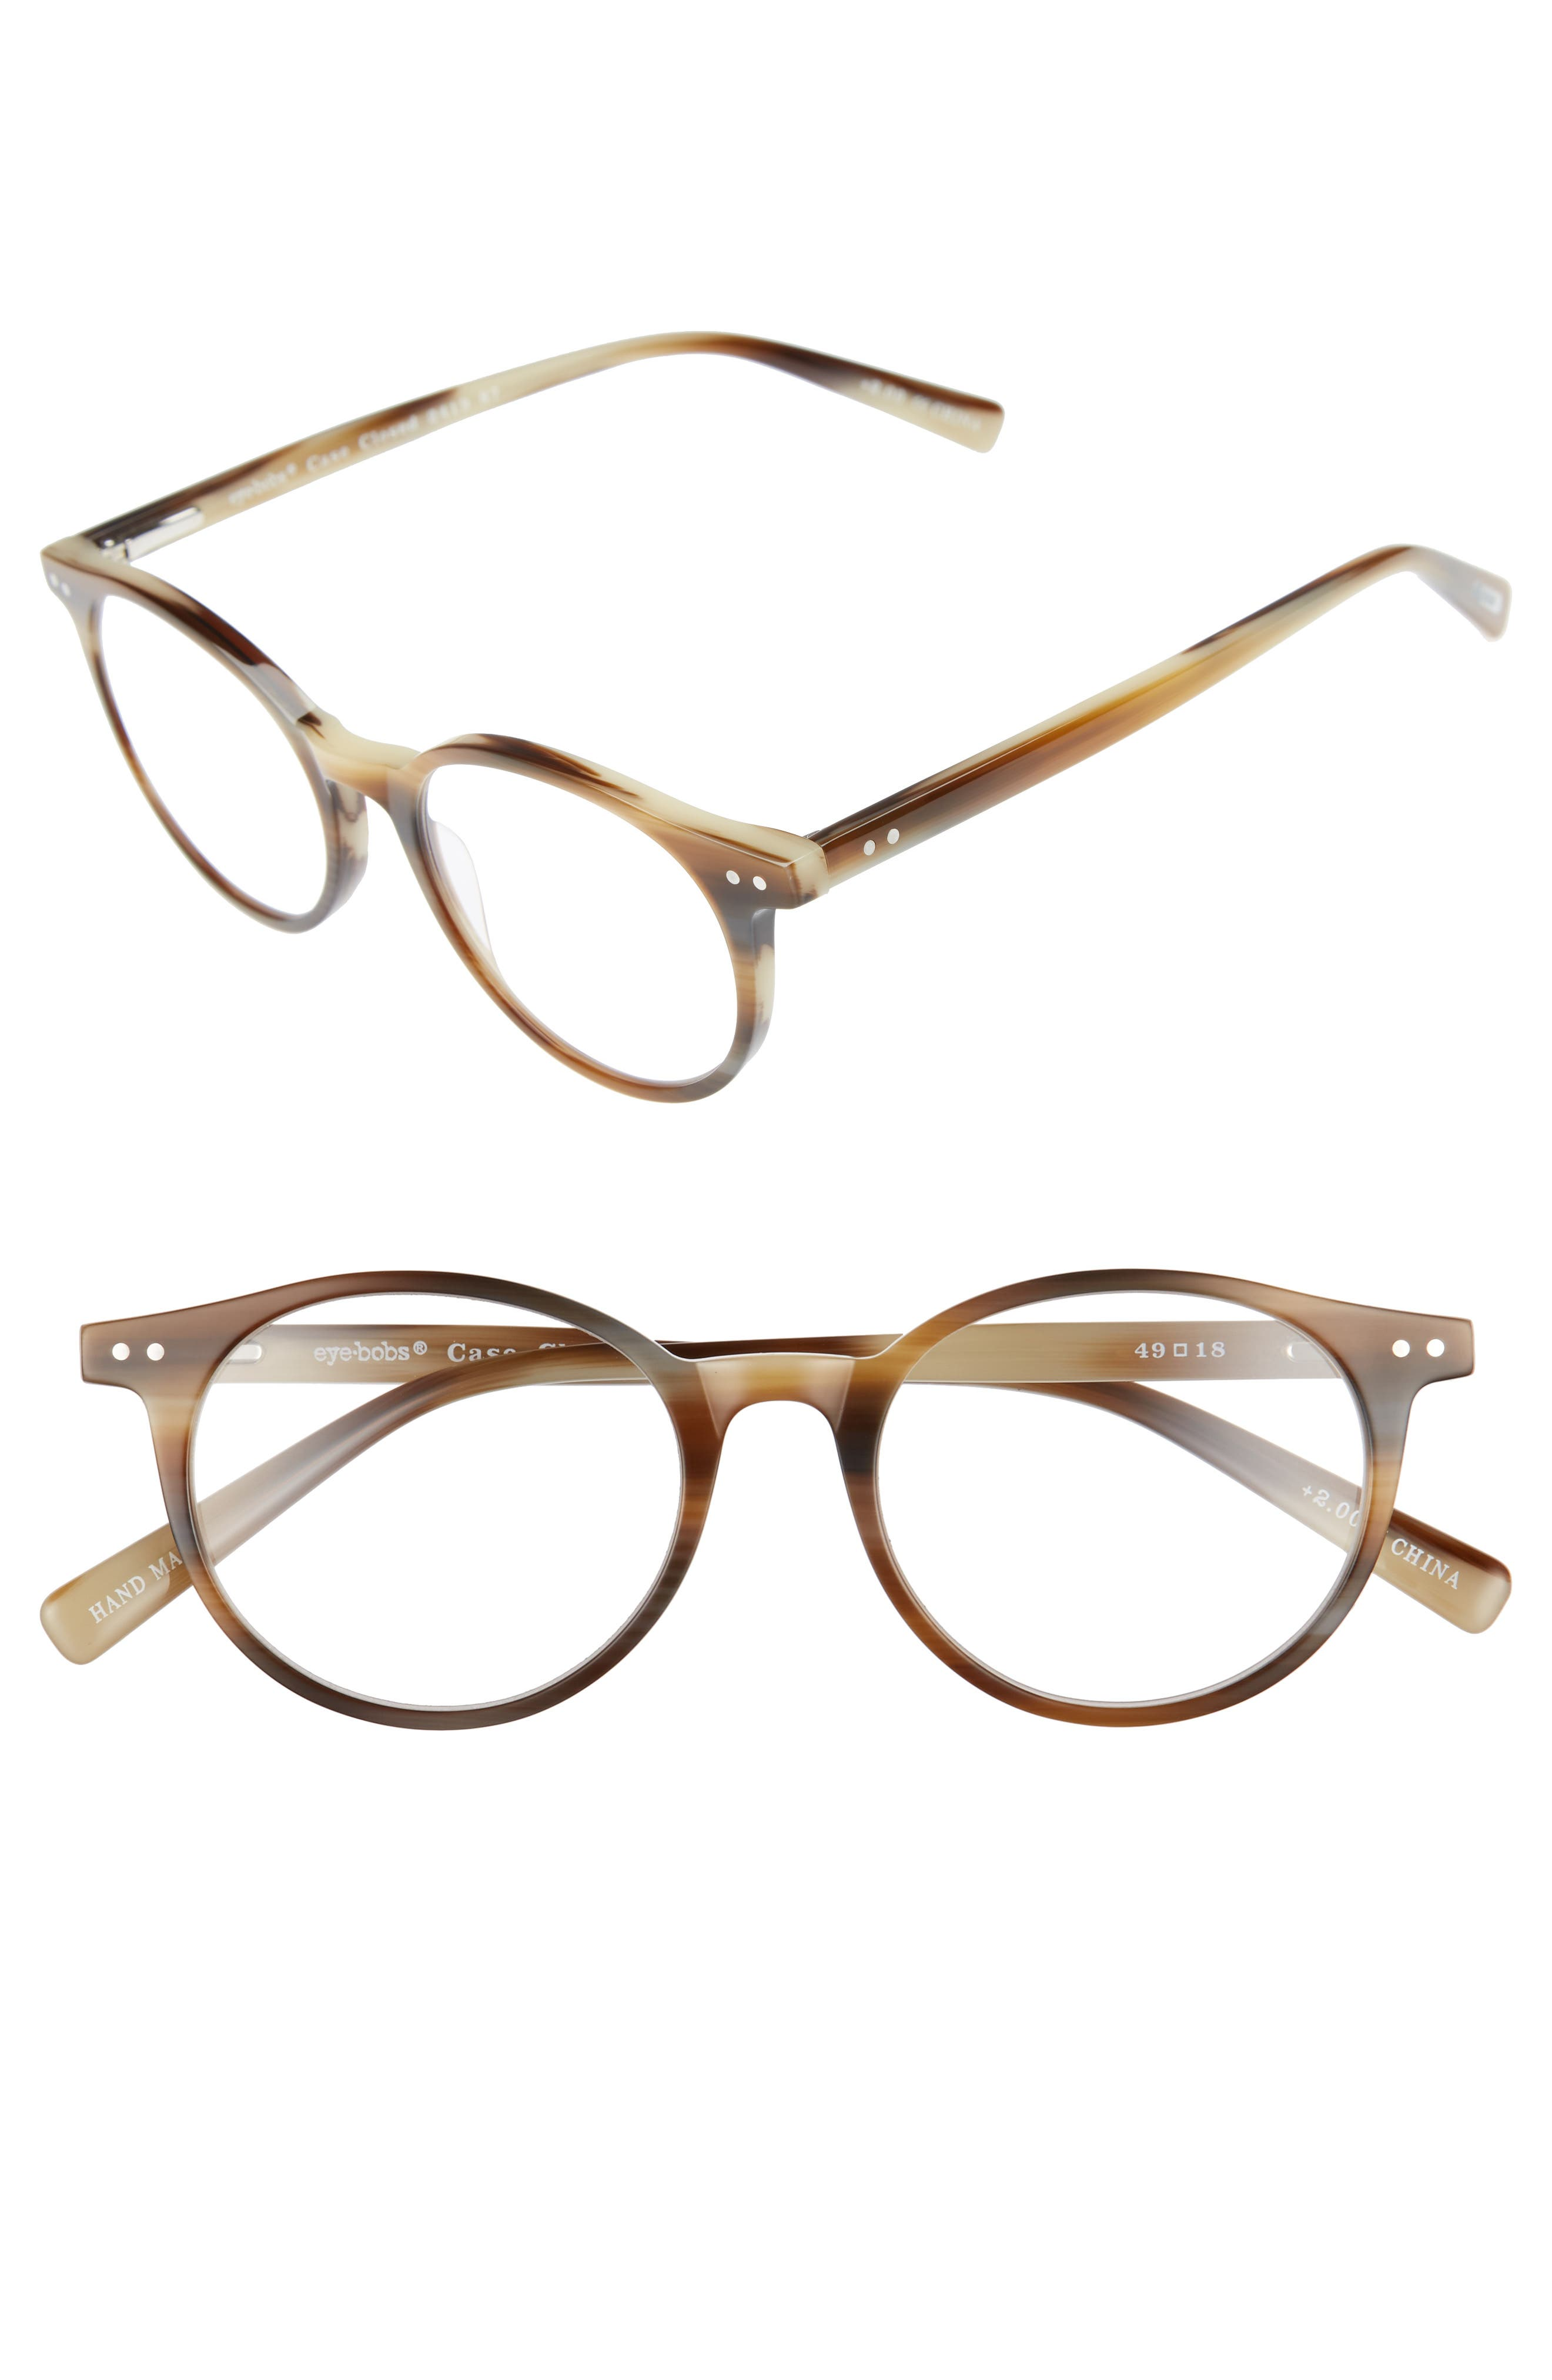 Case Closed 49mm Reading Glasses,                         Main,                         color, Brown Horn